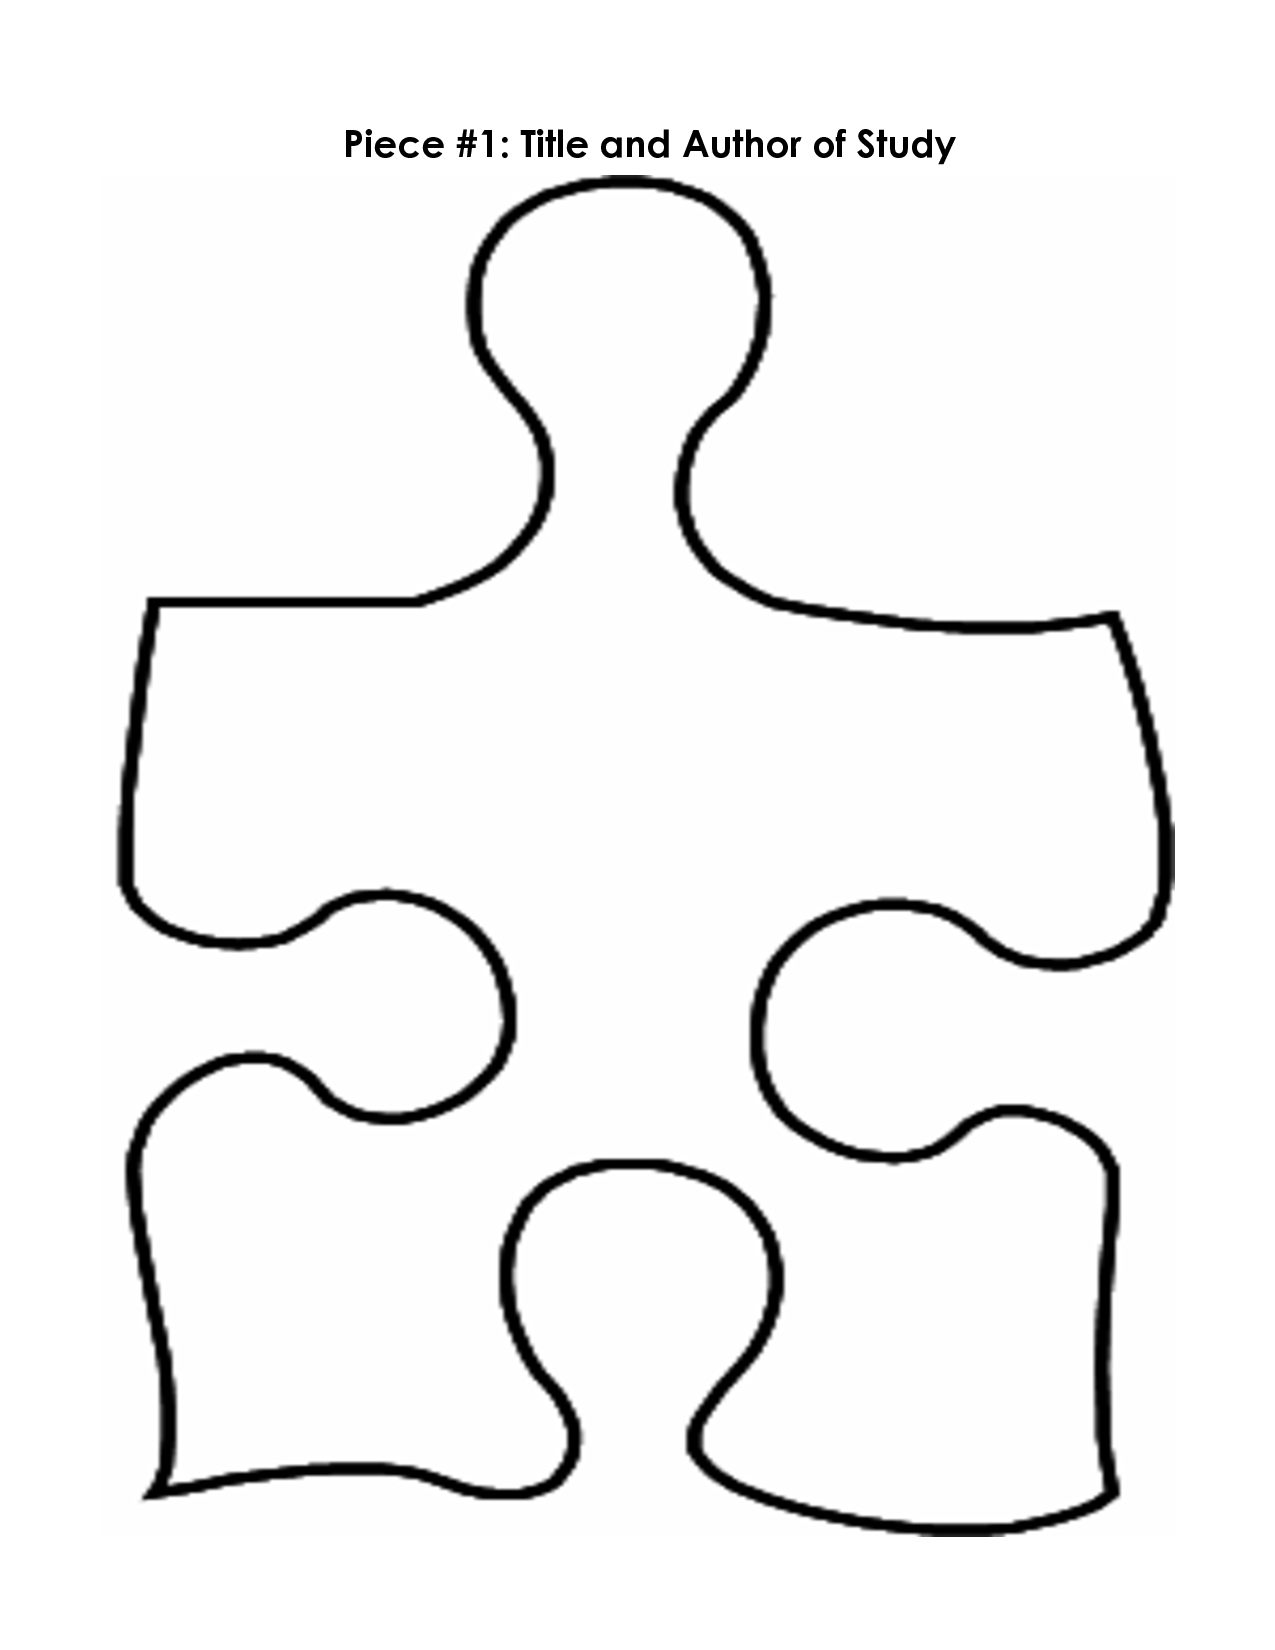 Free Puzzle Pieces Template, Download Free Clip Art, Free Clip Art - 2 Piece Puzzle Printable